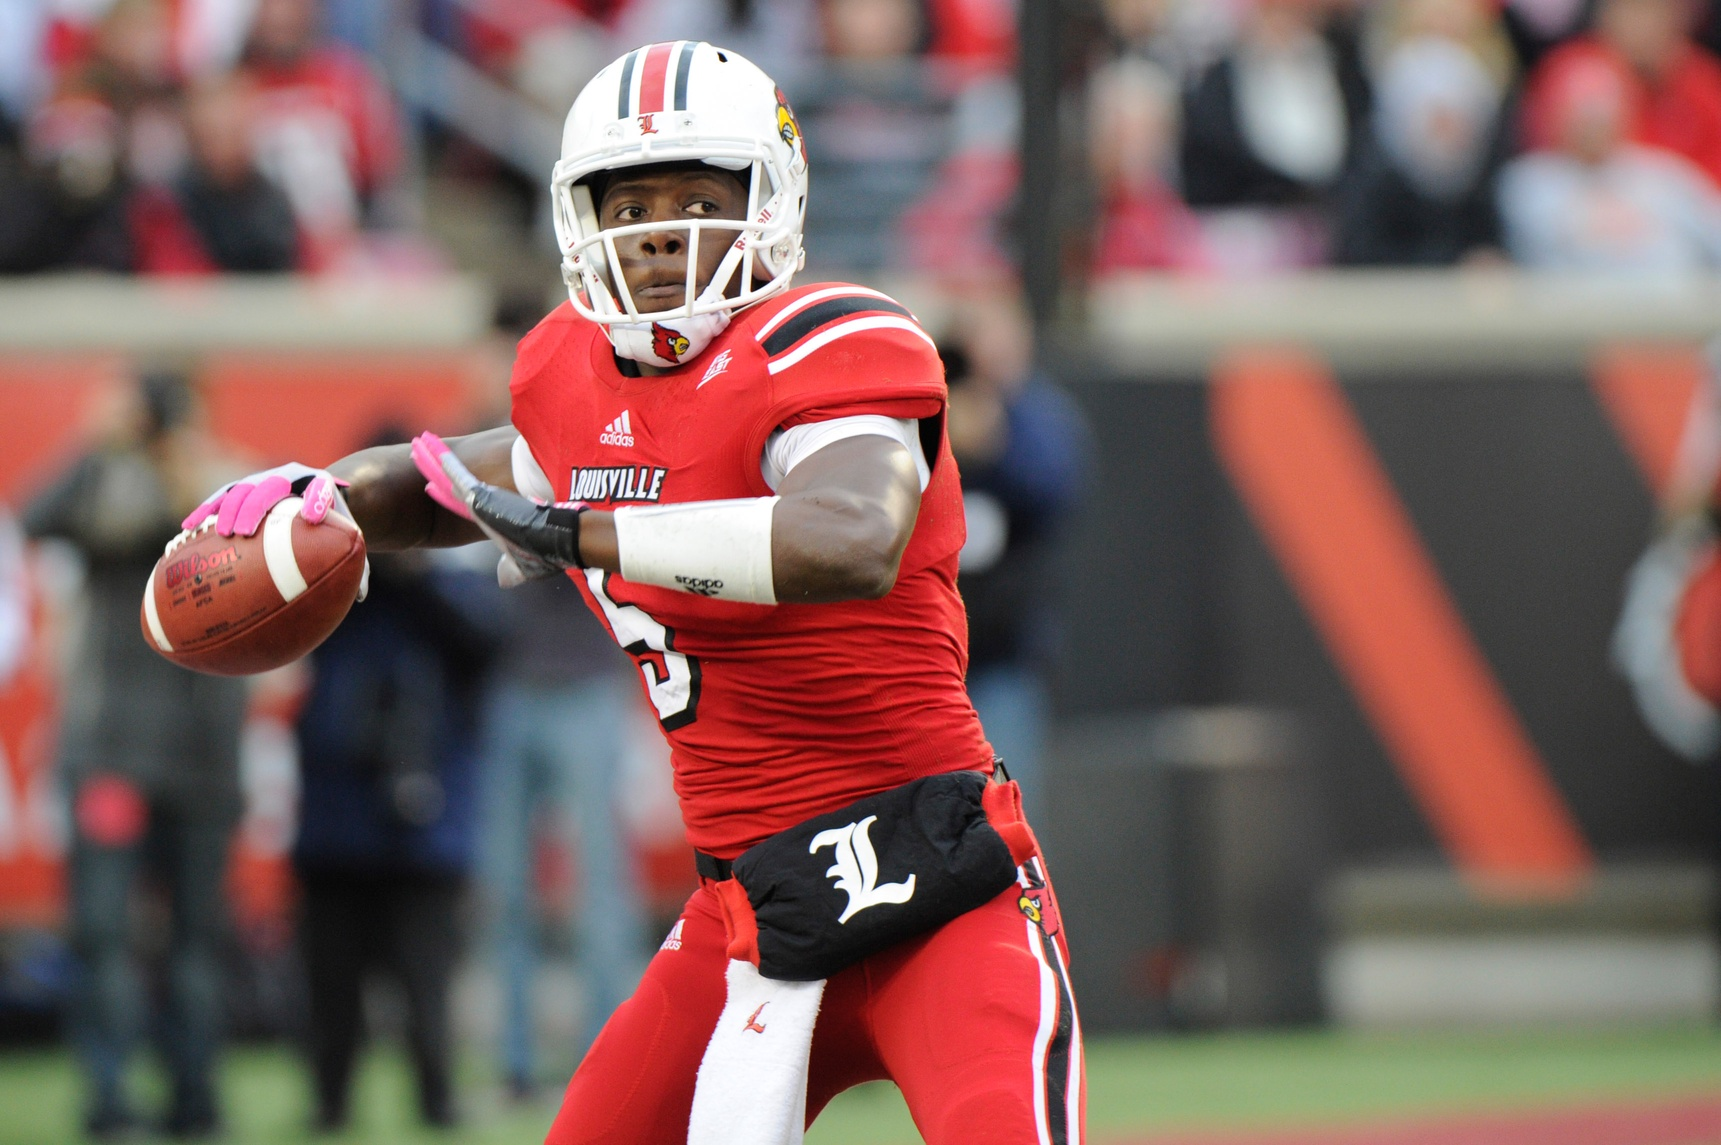 2014 NFL Draft Preview – Top QBs